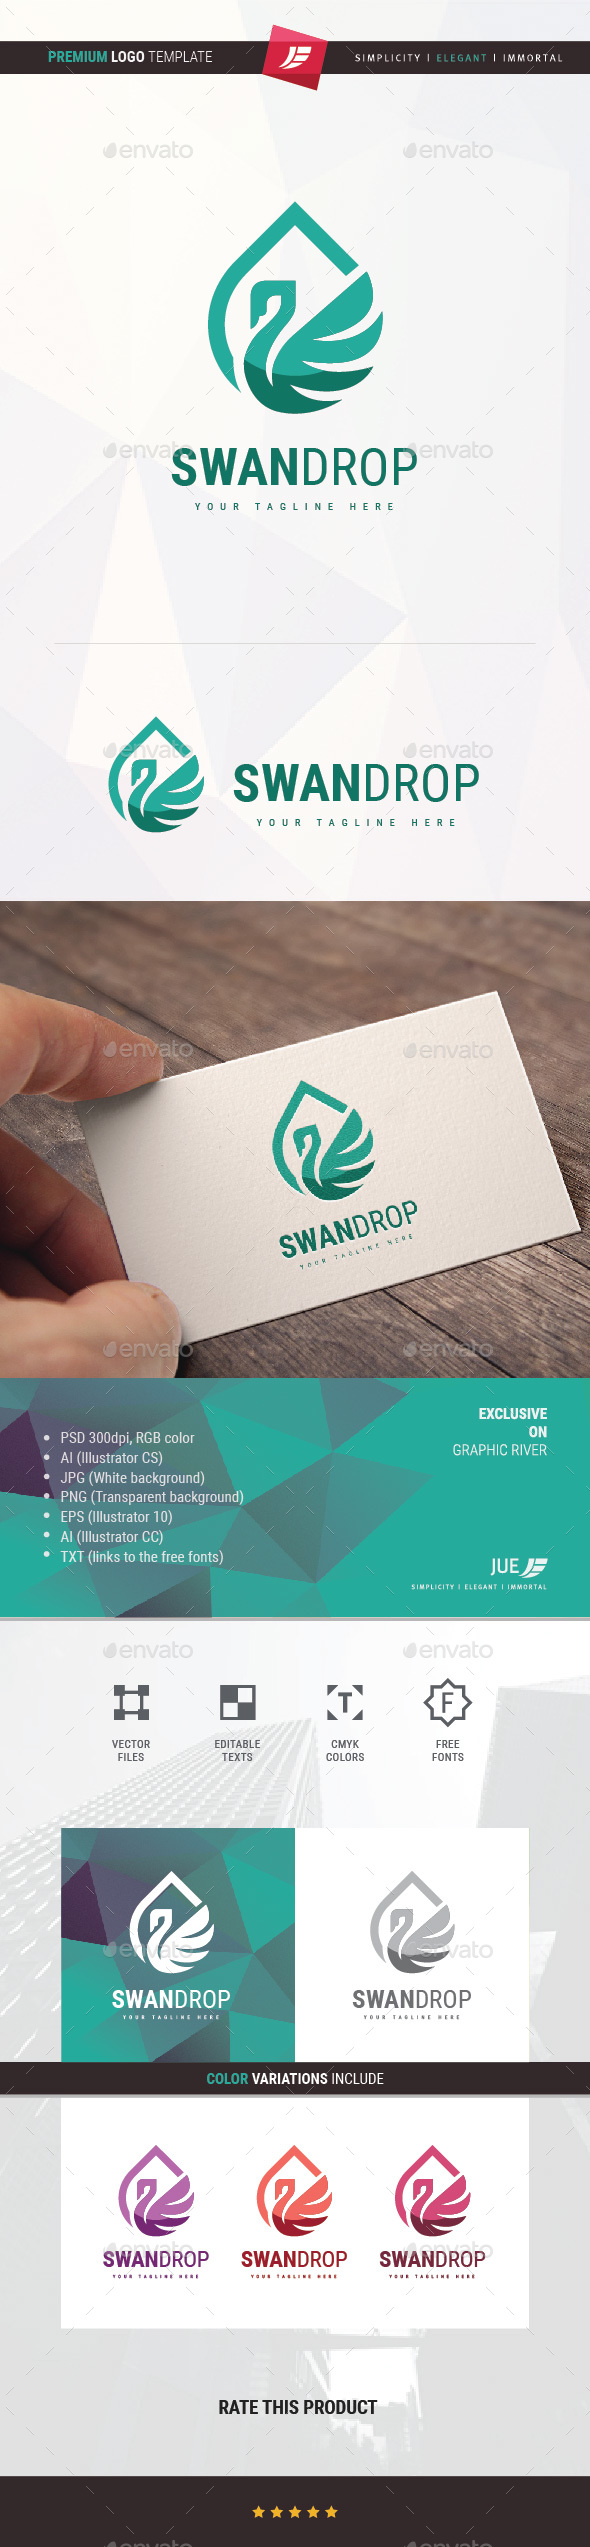 Swan Drop Logo - Animals Logo Templates